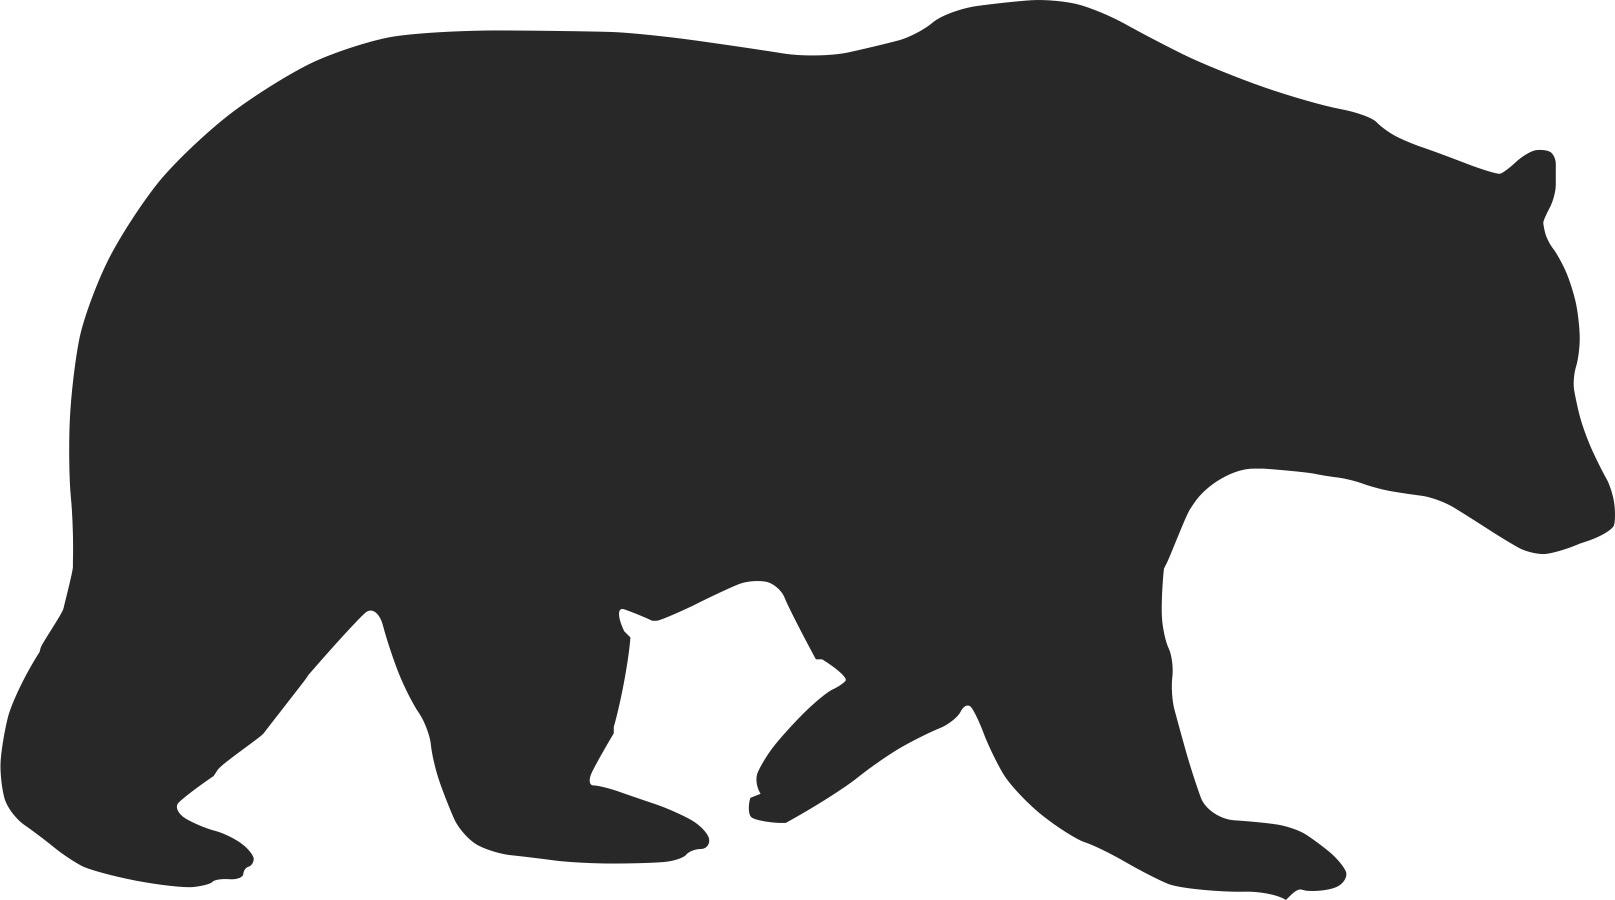 Bear clip art silhouette. Sloth at getdrawings com